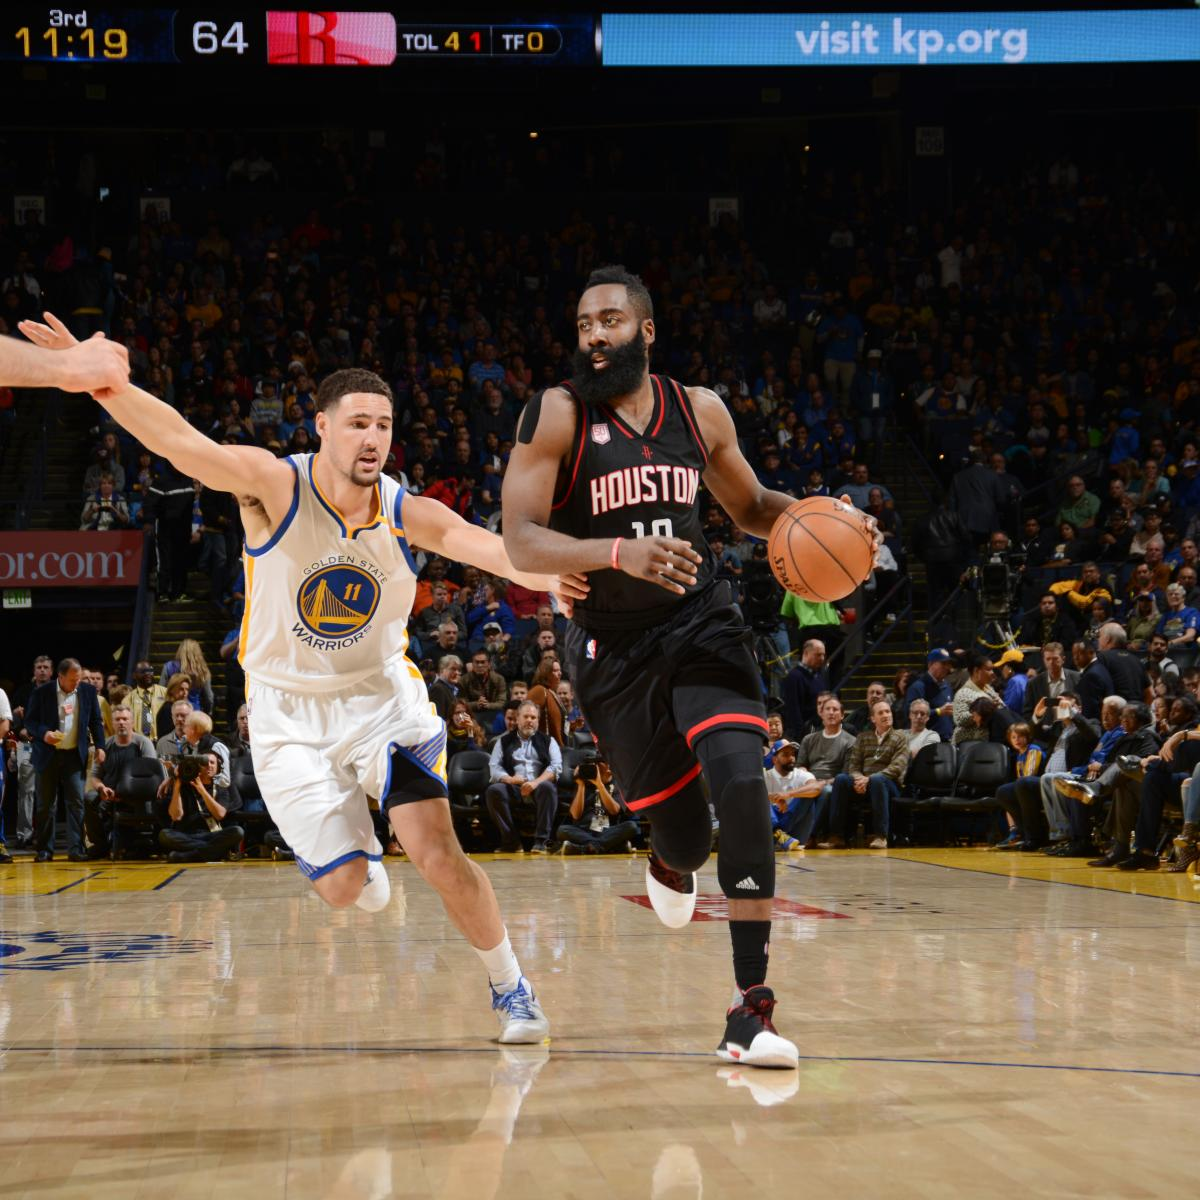 Rockets Vs Warriors Score: Rockets Vs. Warriors: Score, Highlights, Reaction From